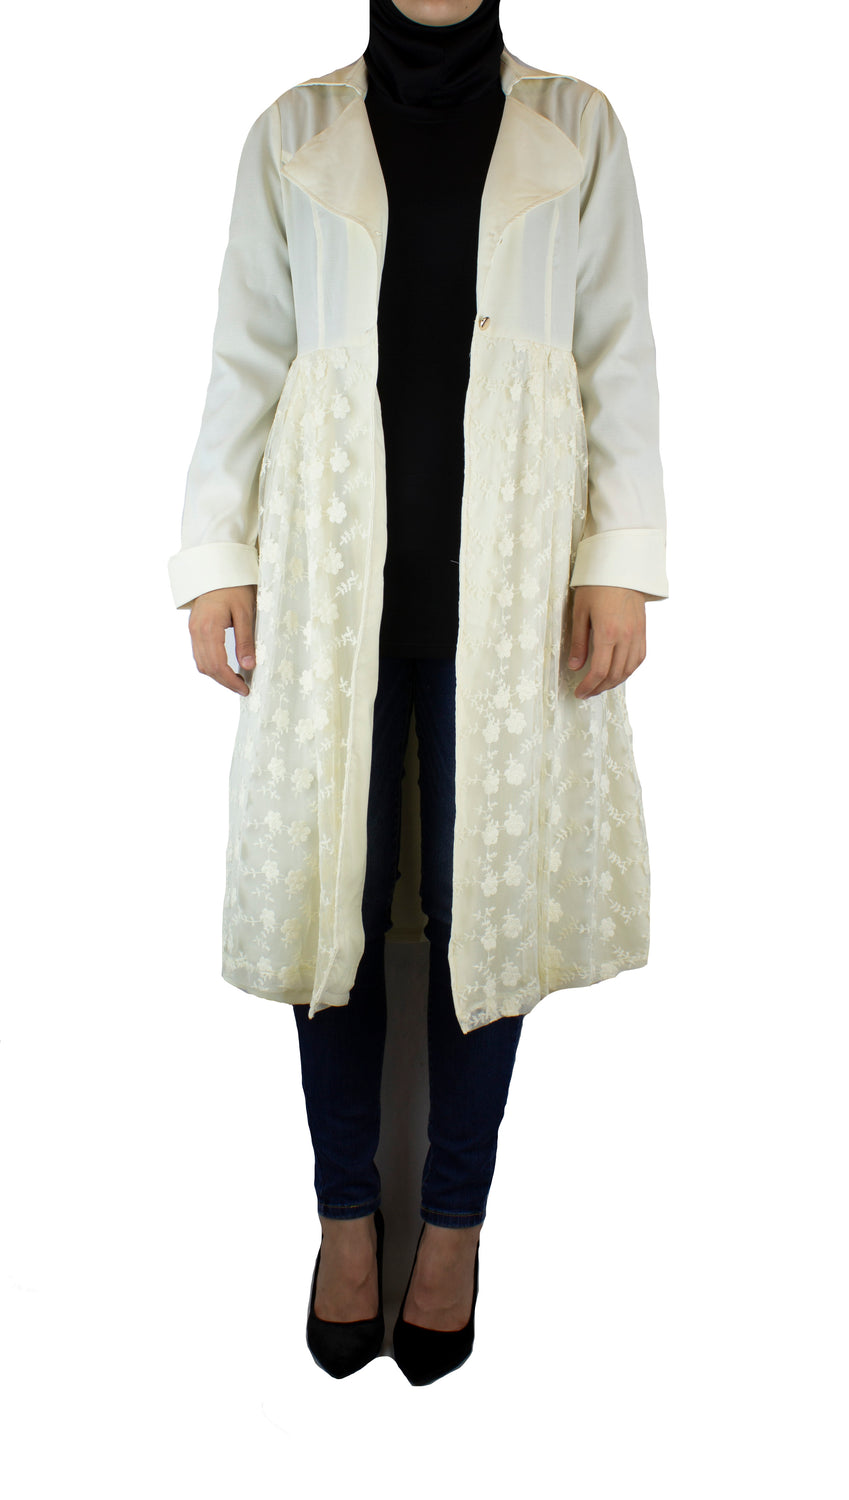 creme long sleeved cardigan embellished with creme lace with pockets and a waist tie